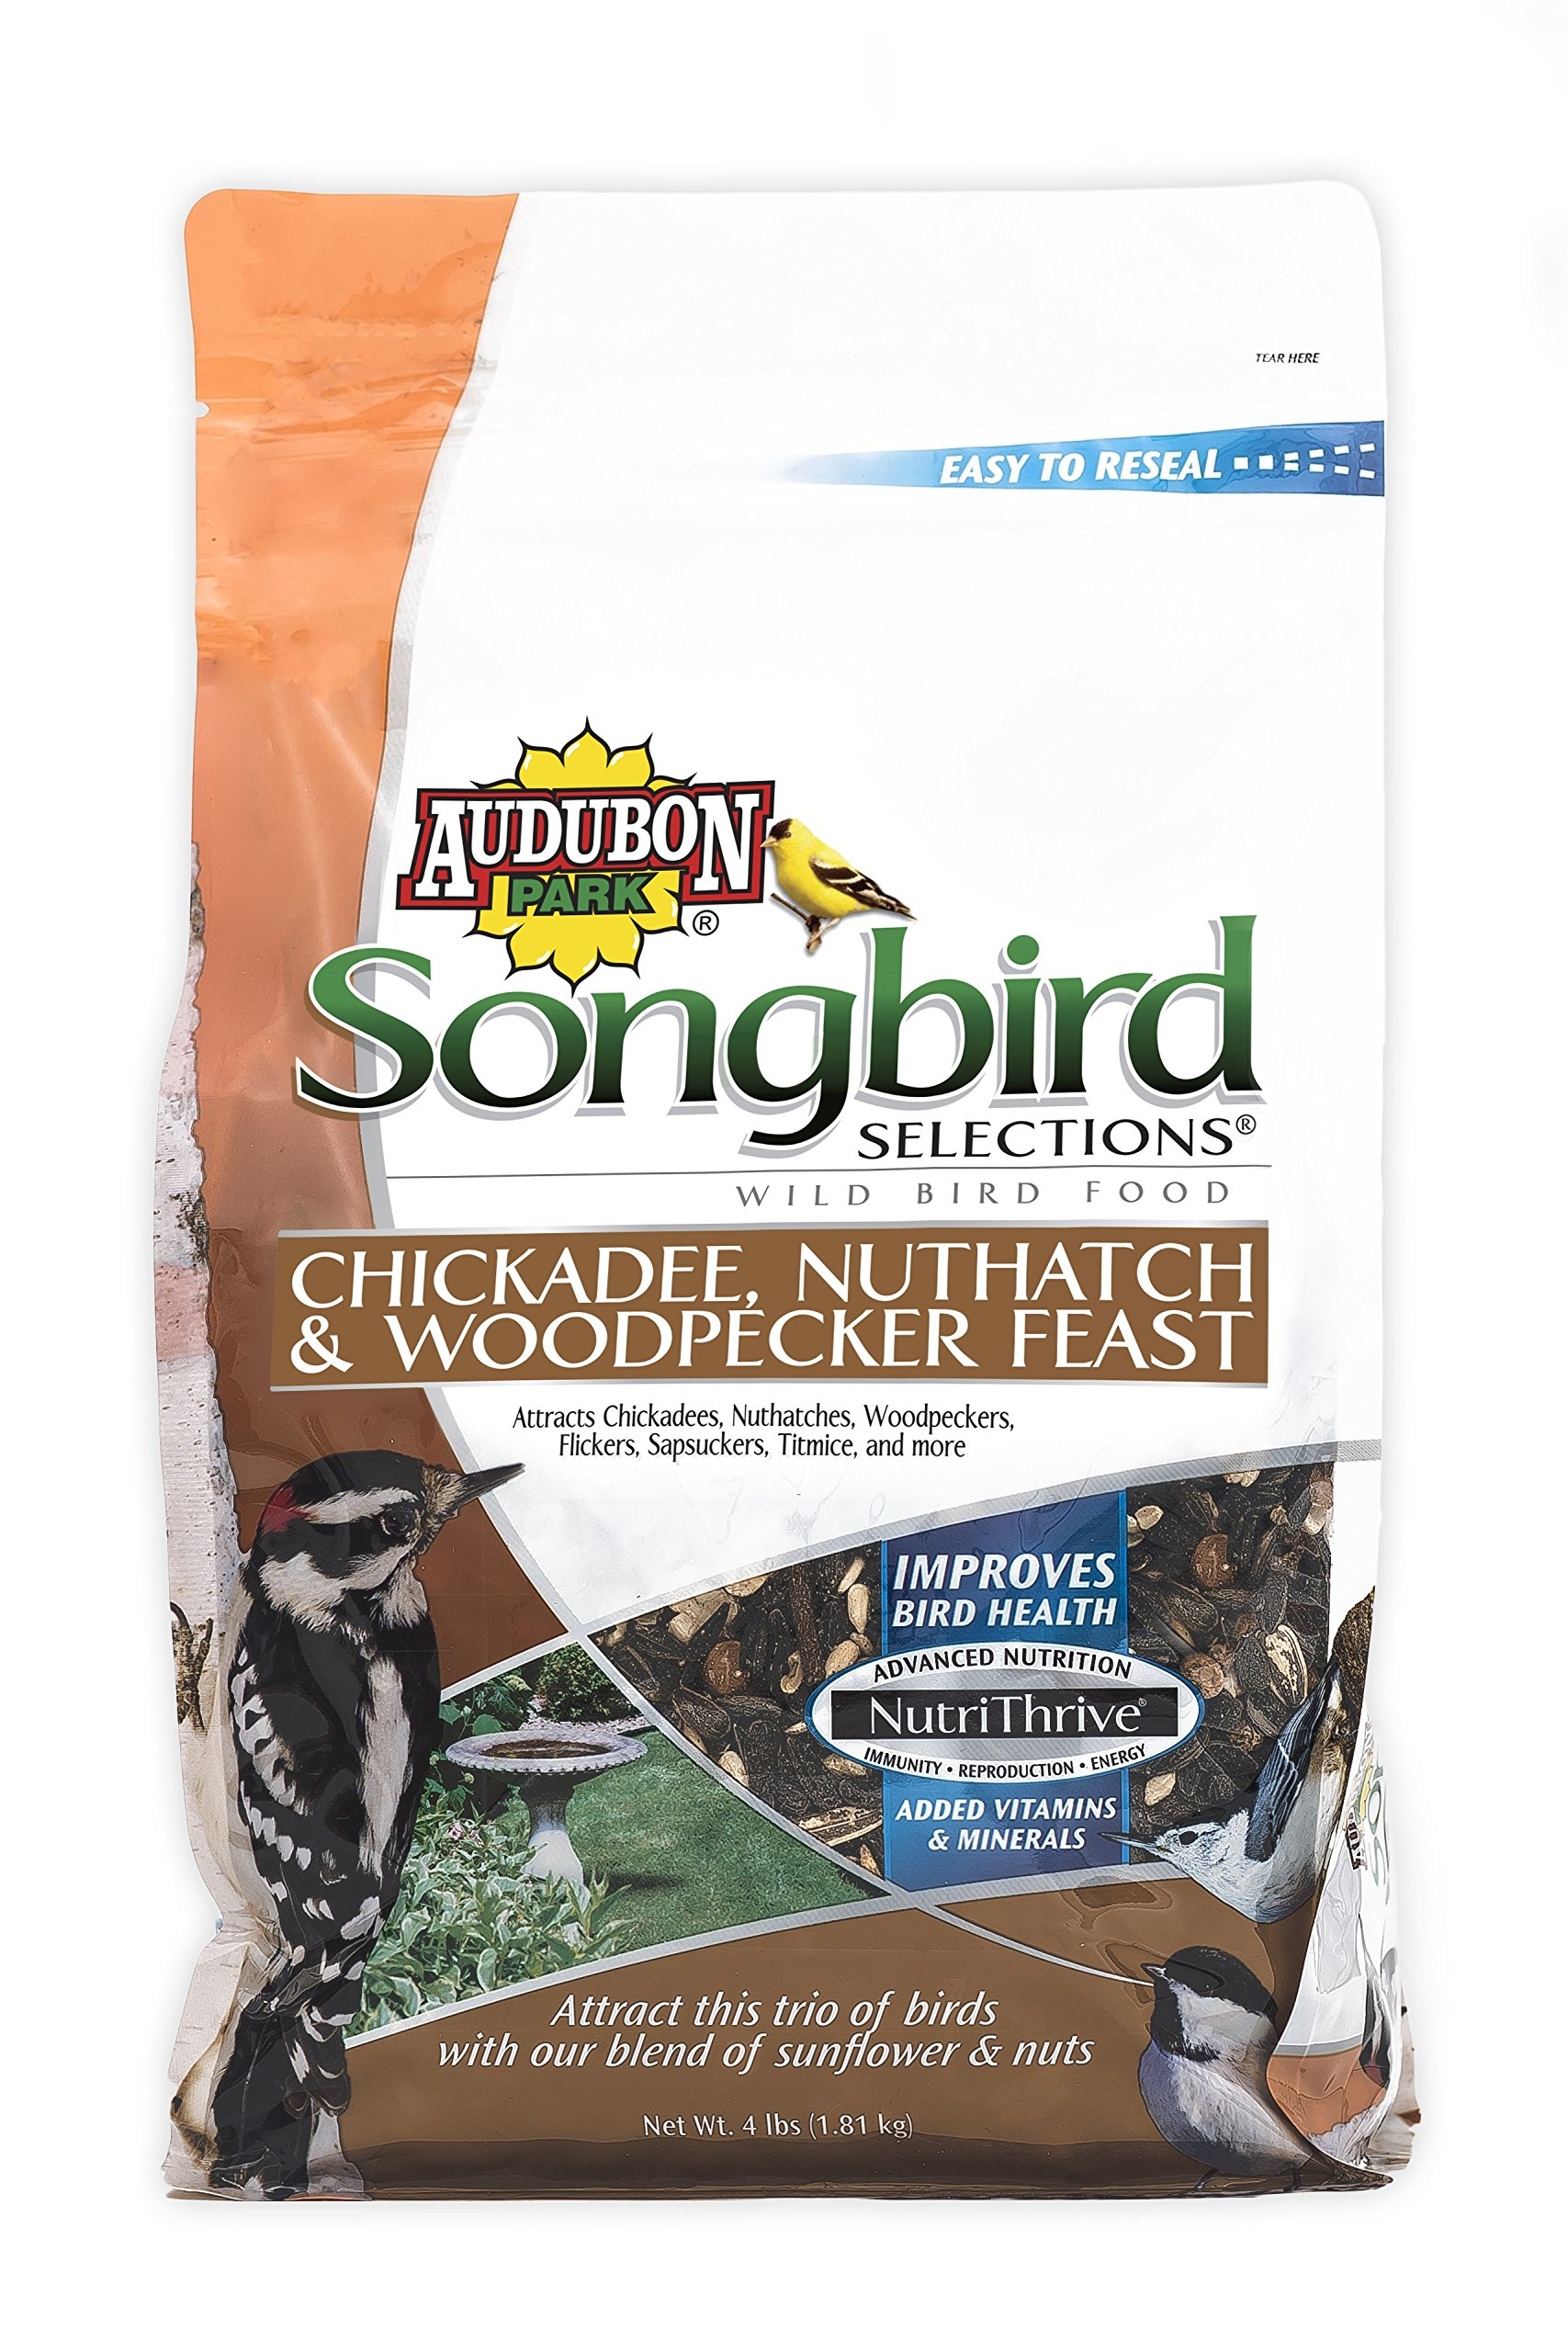 Songbird Selections 12124 Chickadee, Nuthatch and Woodpecker Feast Wild Bird Food, 4-Pound by Audubon Park Songbird Selections